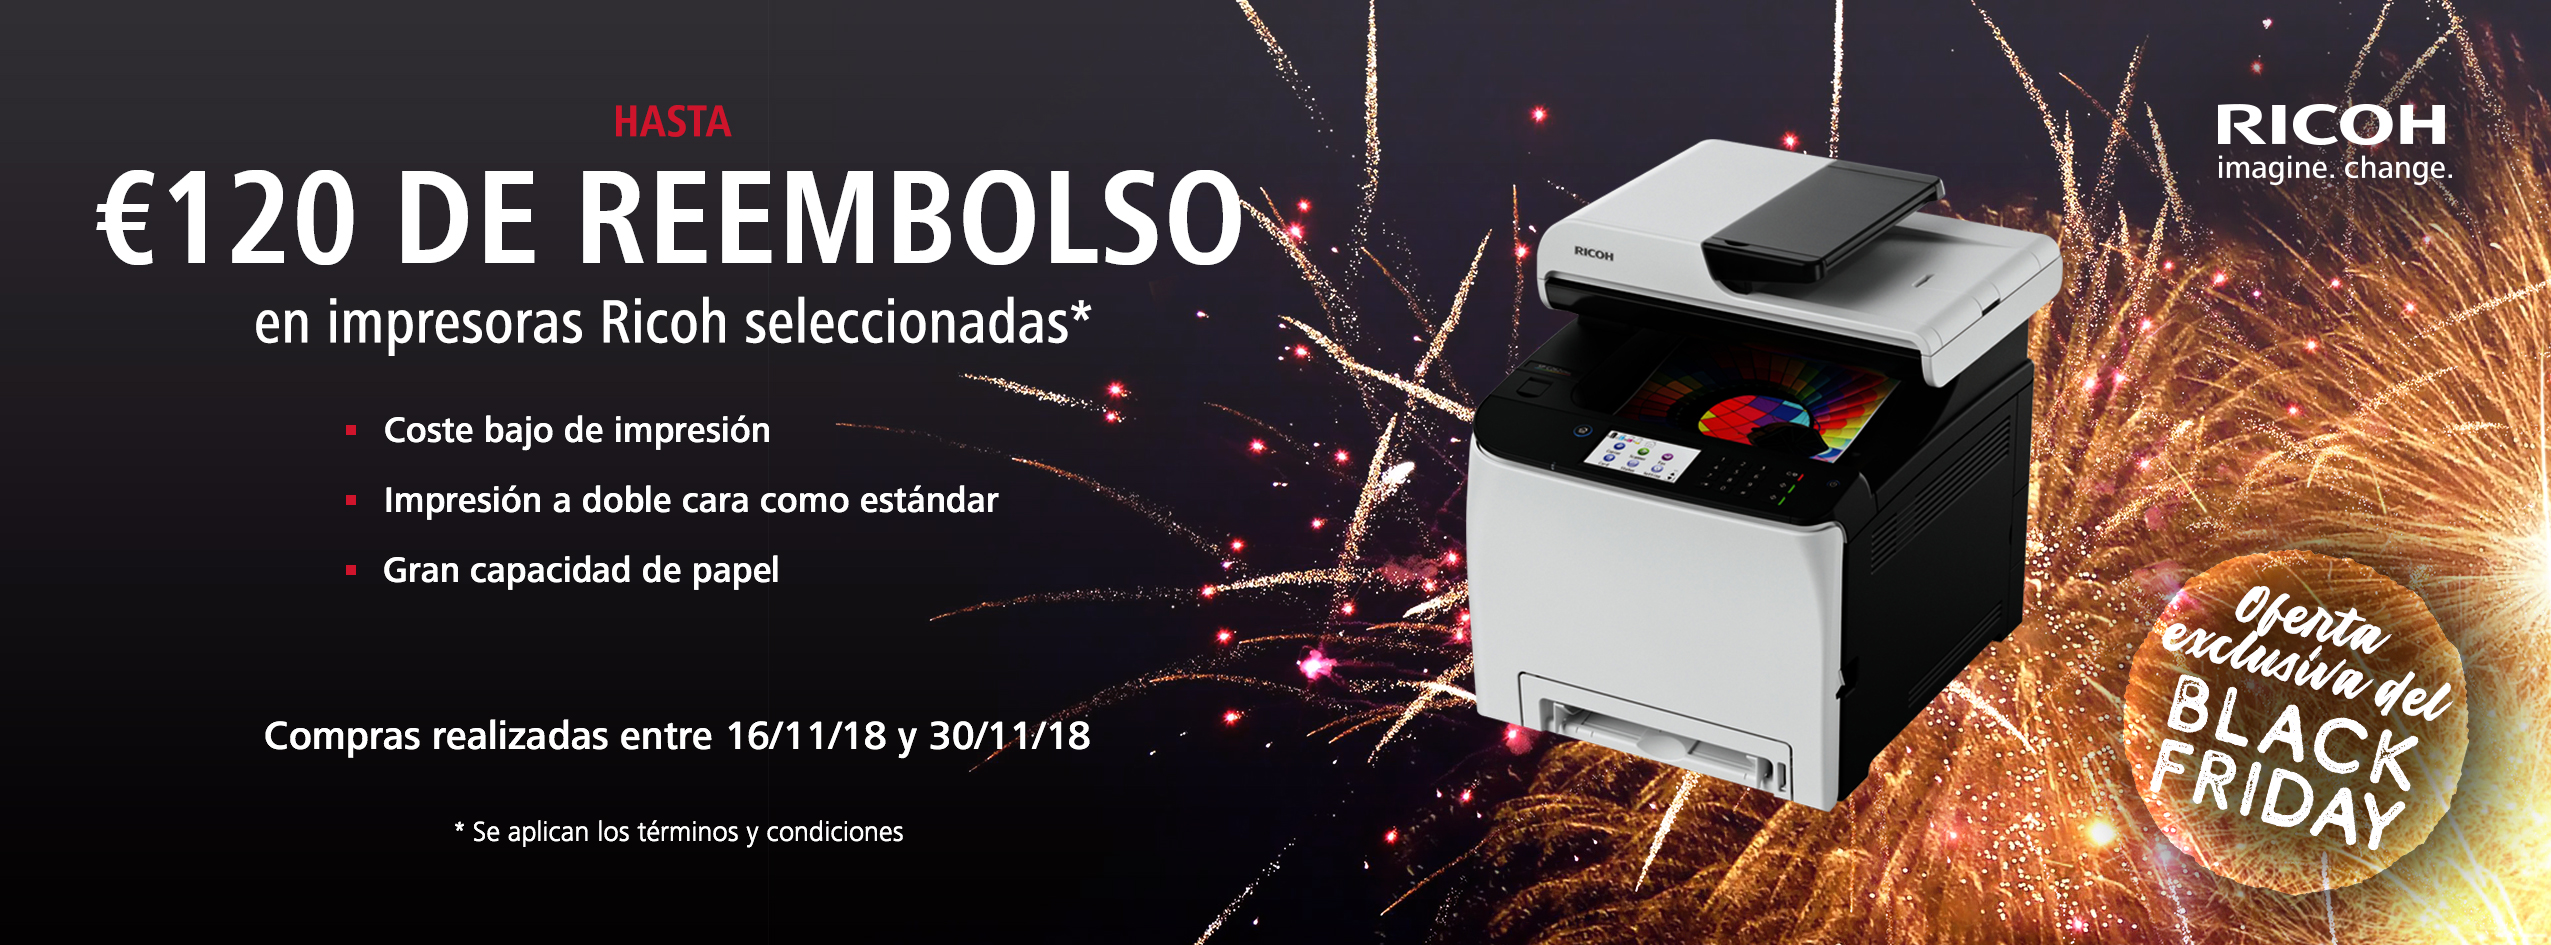 Ricoh Black Friday Accelerator Promotion - ES